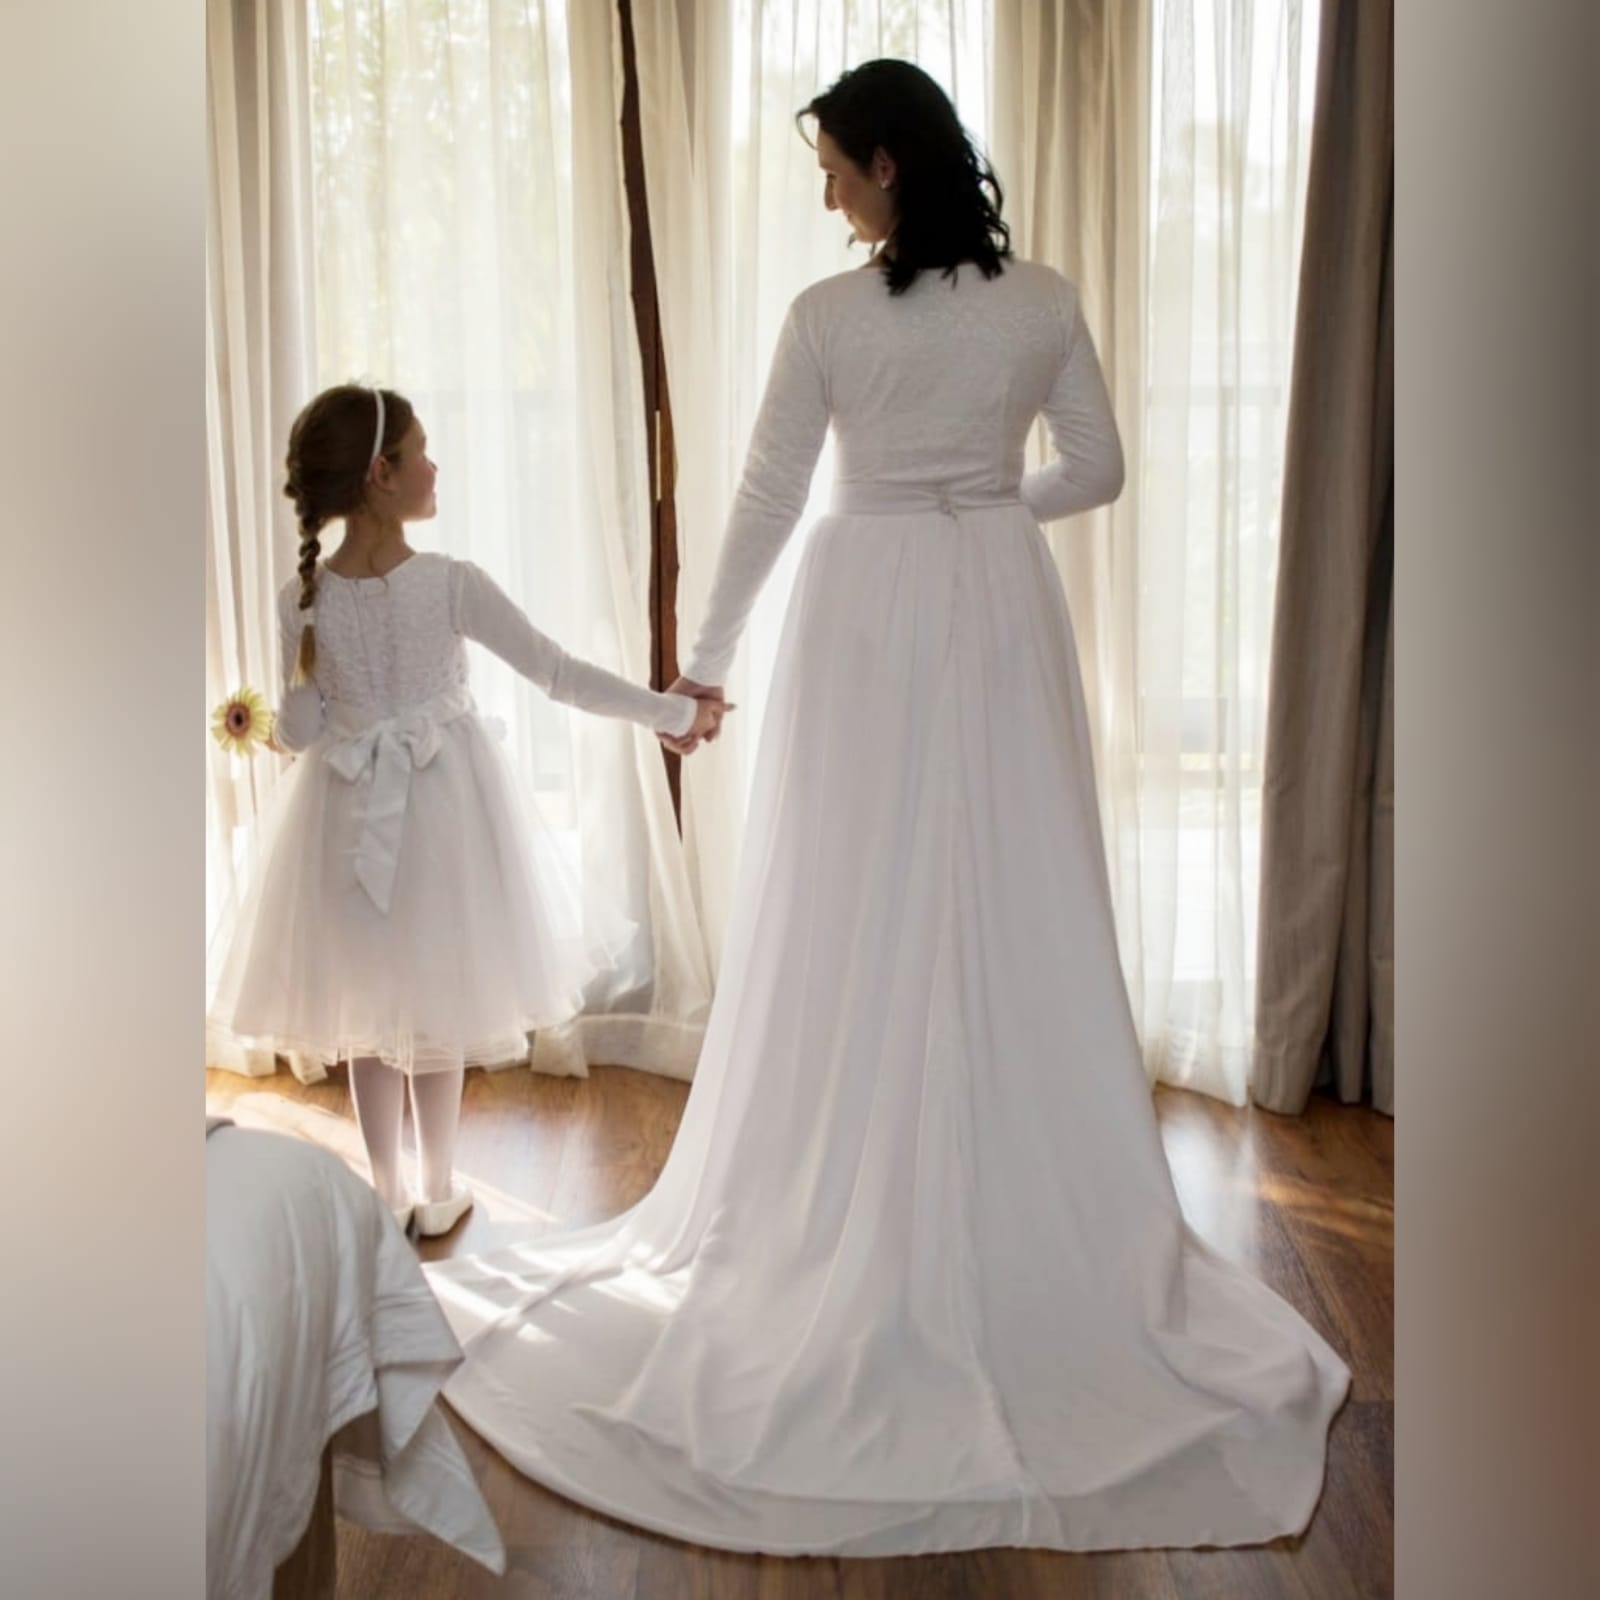 2 piece white flowy simple wedding dress 7 2 piece white flowy simple wedding dress. A bodysuit fitted lace top with long sleeves and jewel neckline. Flowy wide long skirt with a chiffon layer and a long train.